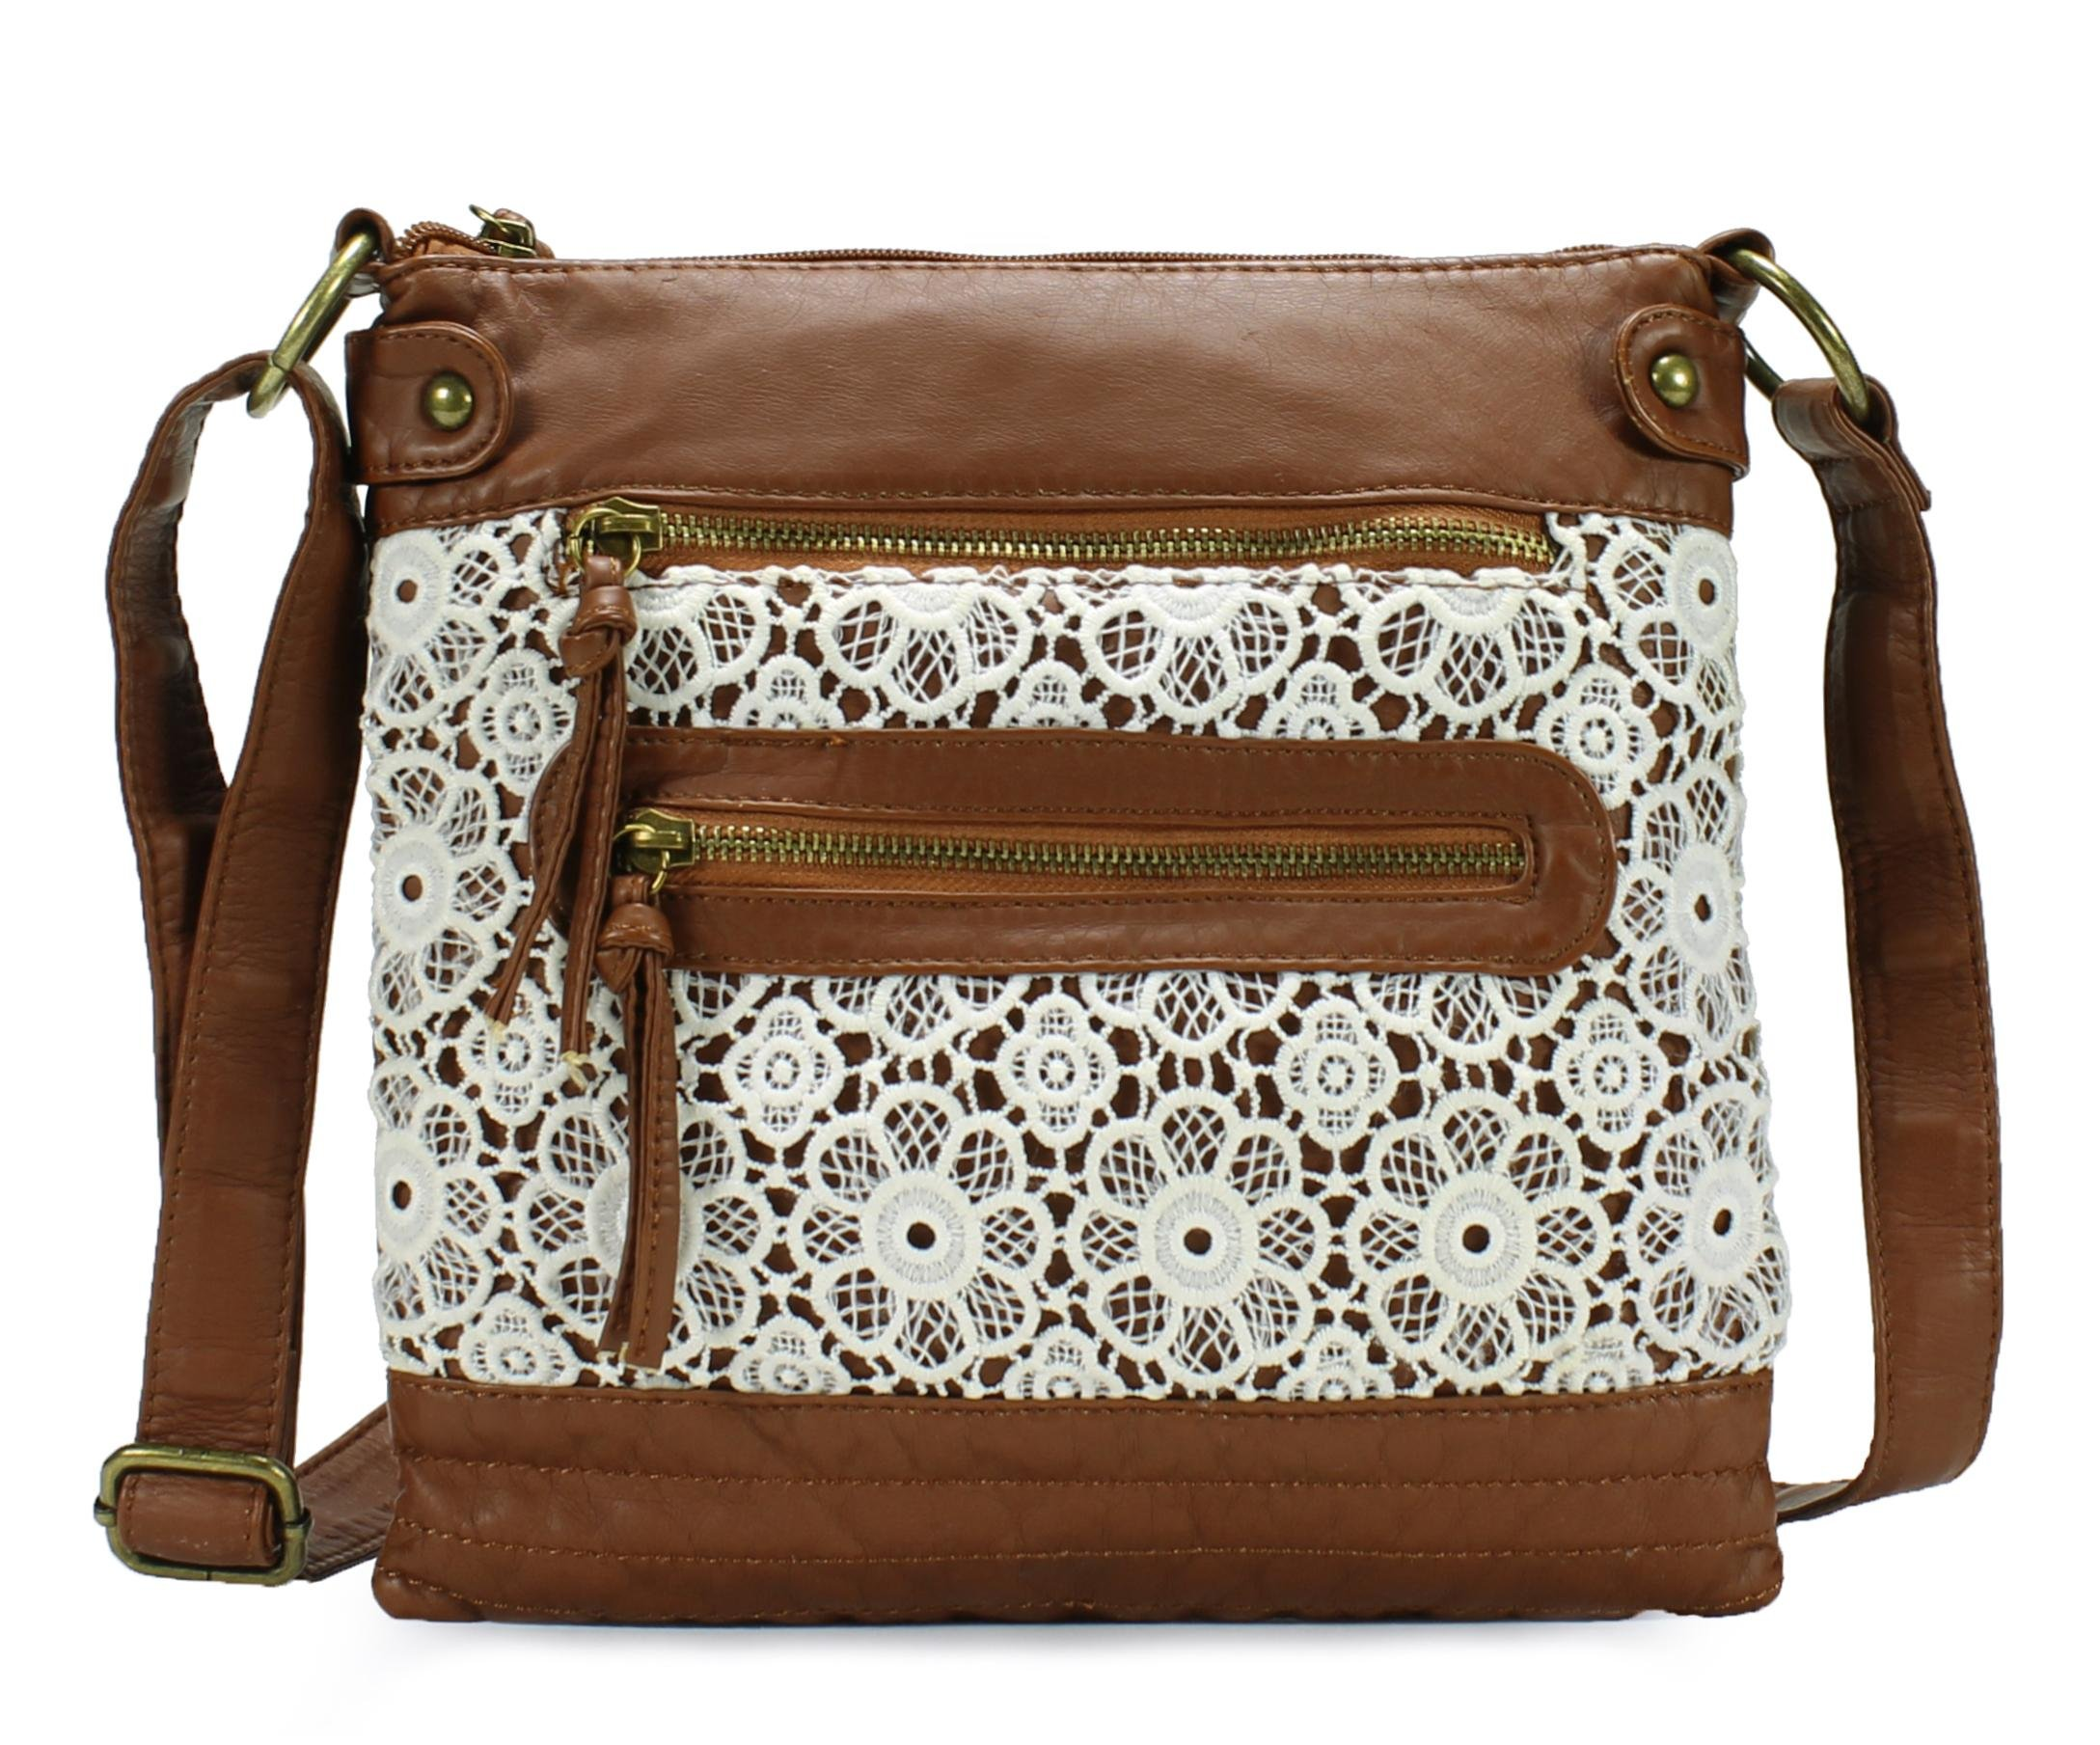 Scarleton Lace Style Crossbody Bag H190804 - Brown